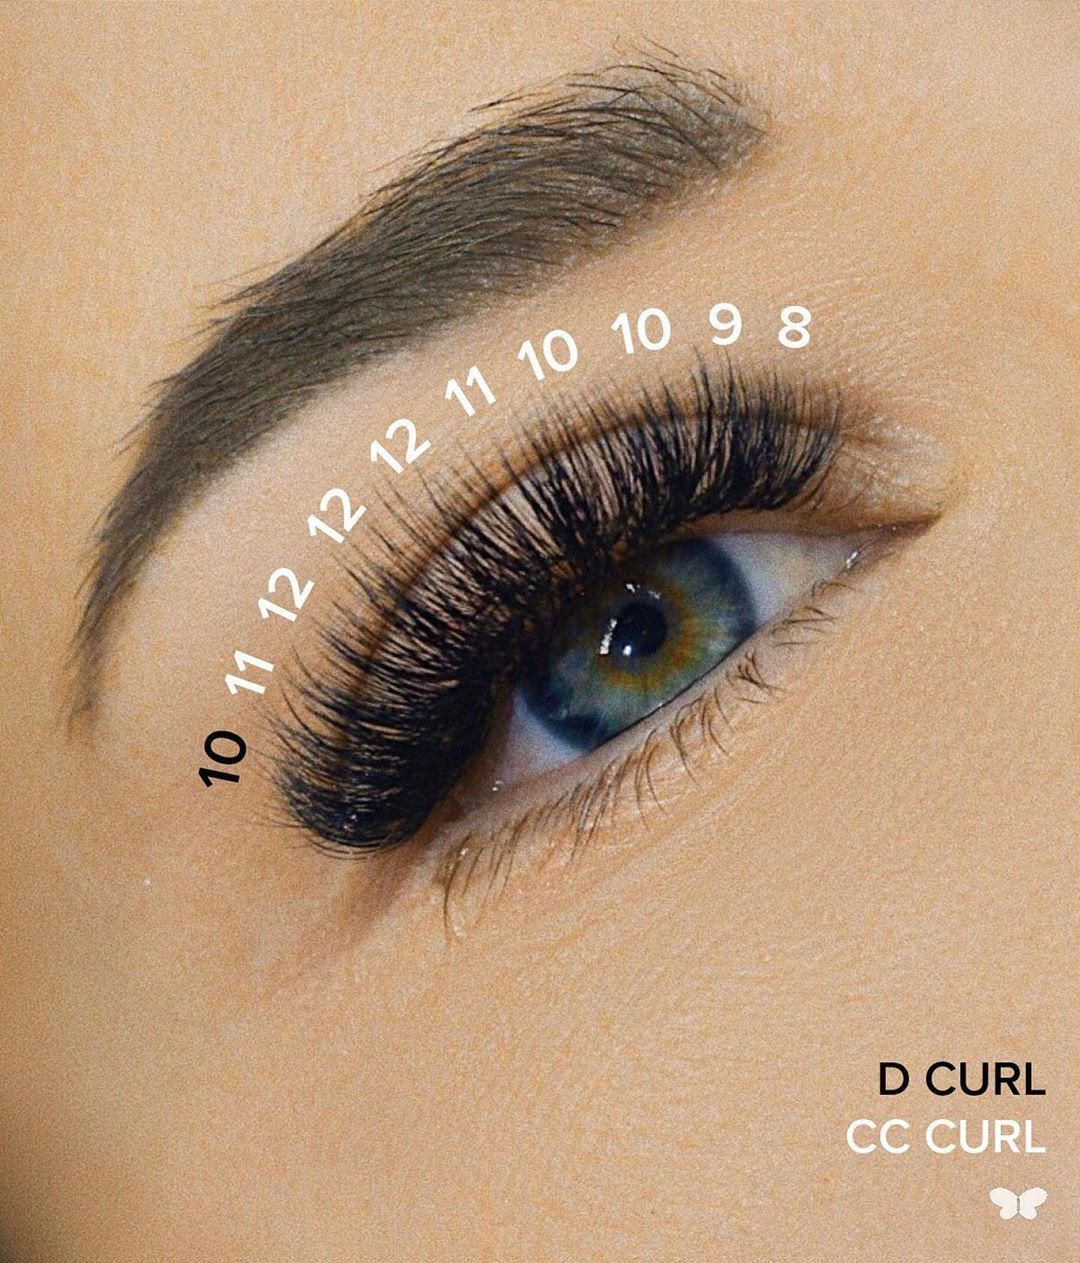 Read more about eye makeup for beginners in 2020 (With ...